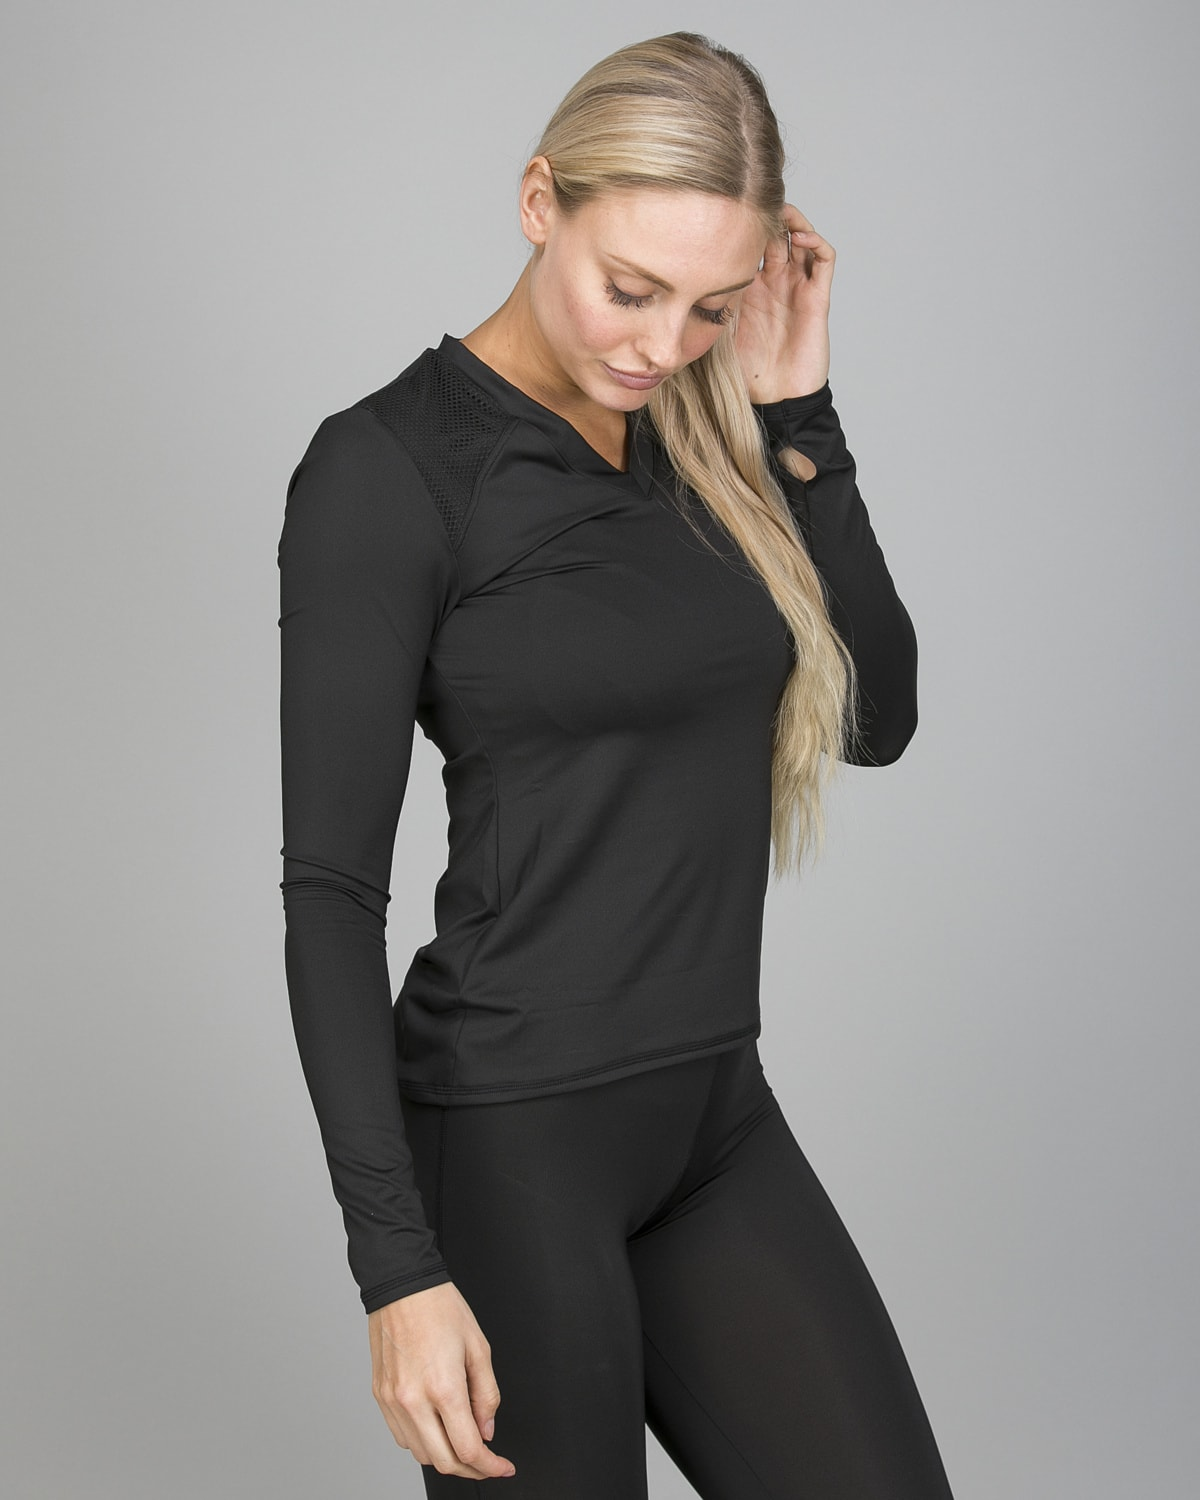 Shock Absorber Active Branded Long Sleeve S06S8 e